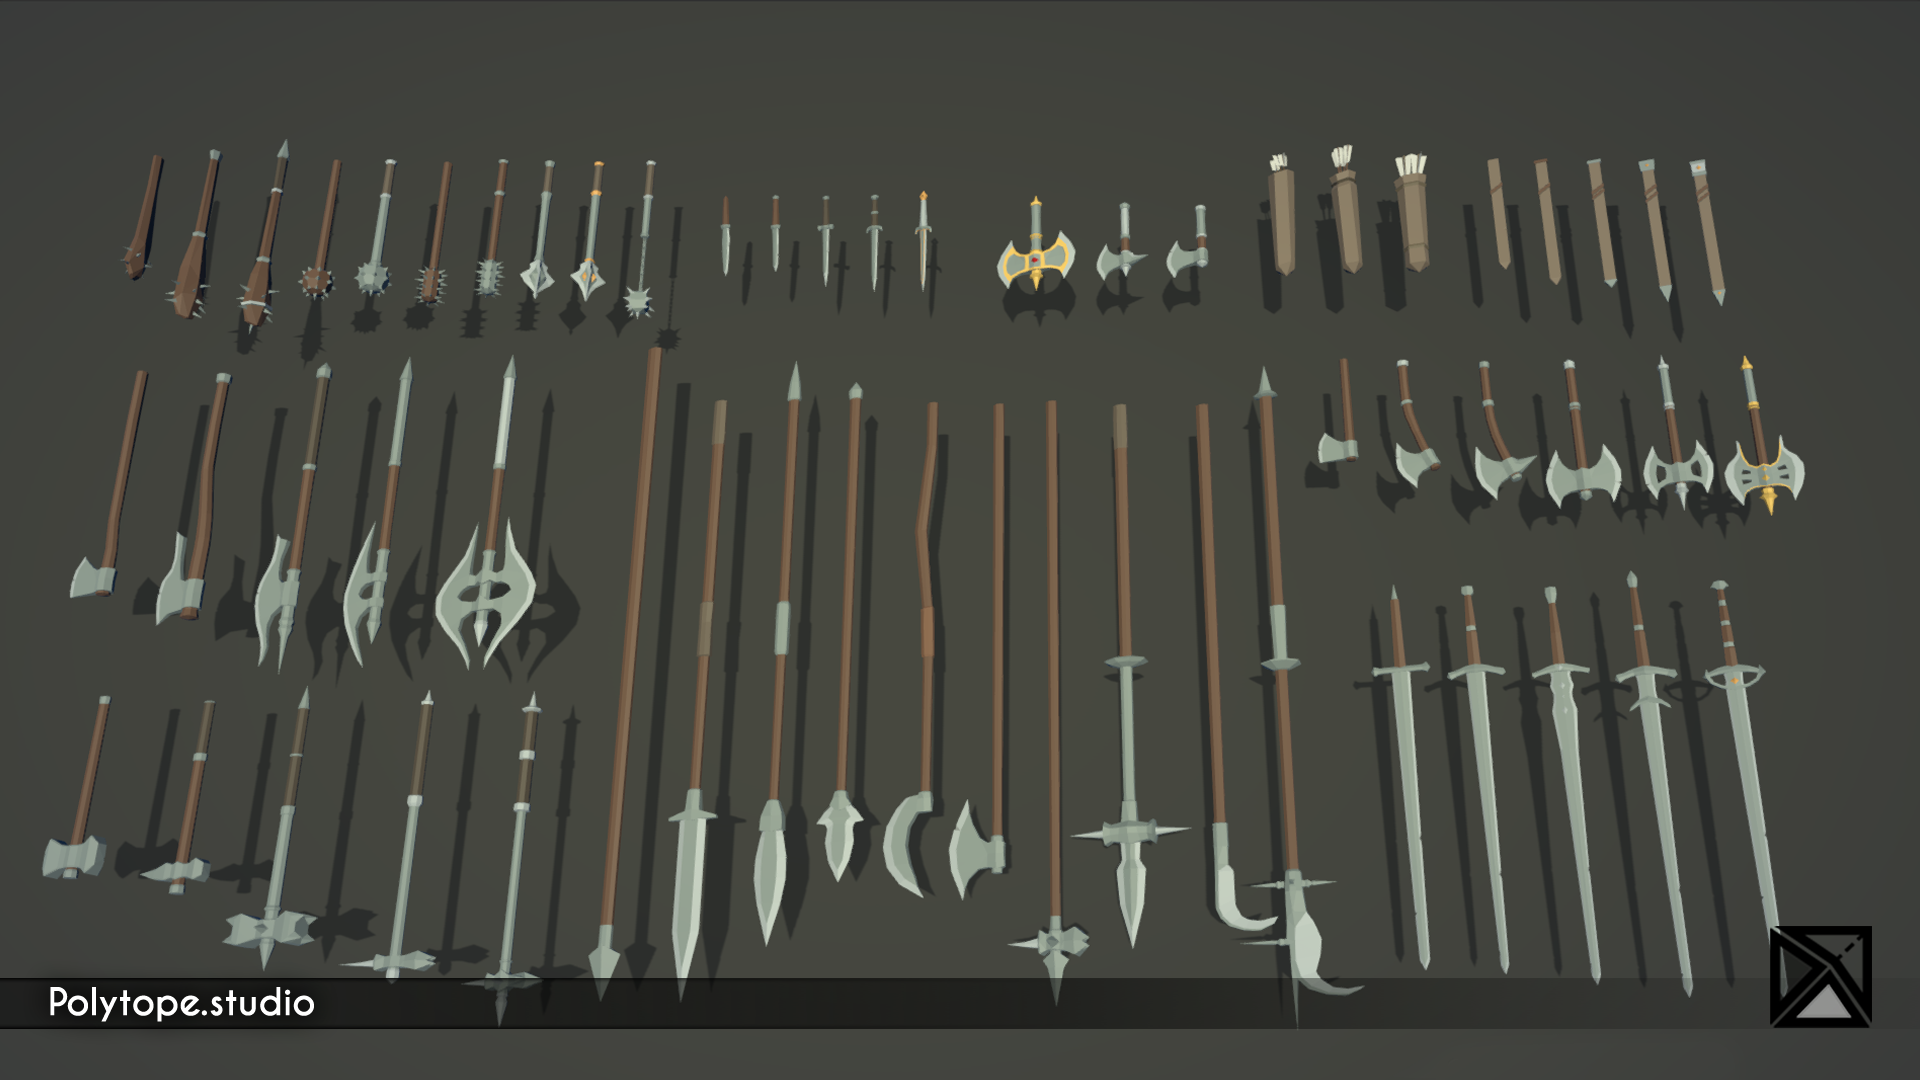 PT_Medieval_Lowpoly_Weapons_Sword_Axe_Halberd_Mace_Dagger_Warhammer_Quiver_Pike_Sheat.png